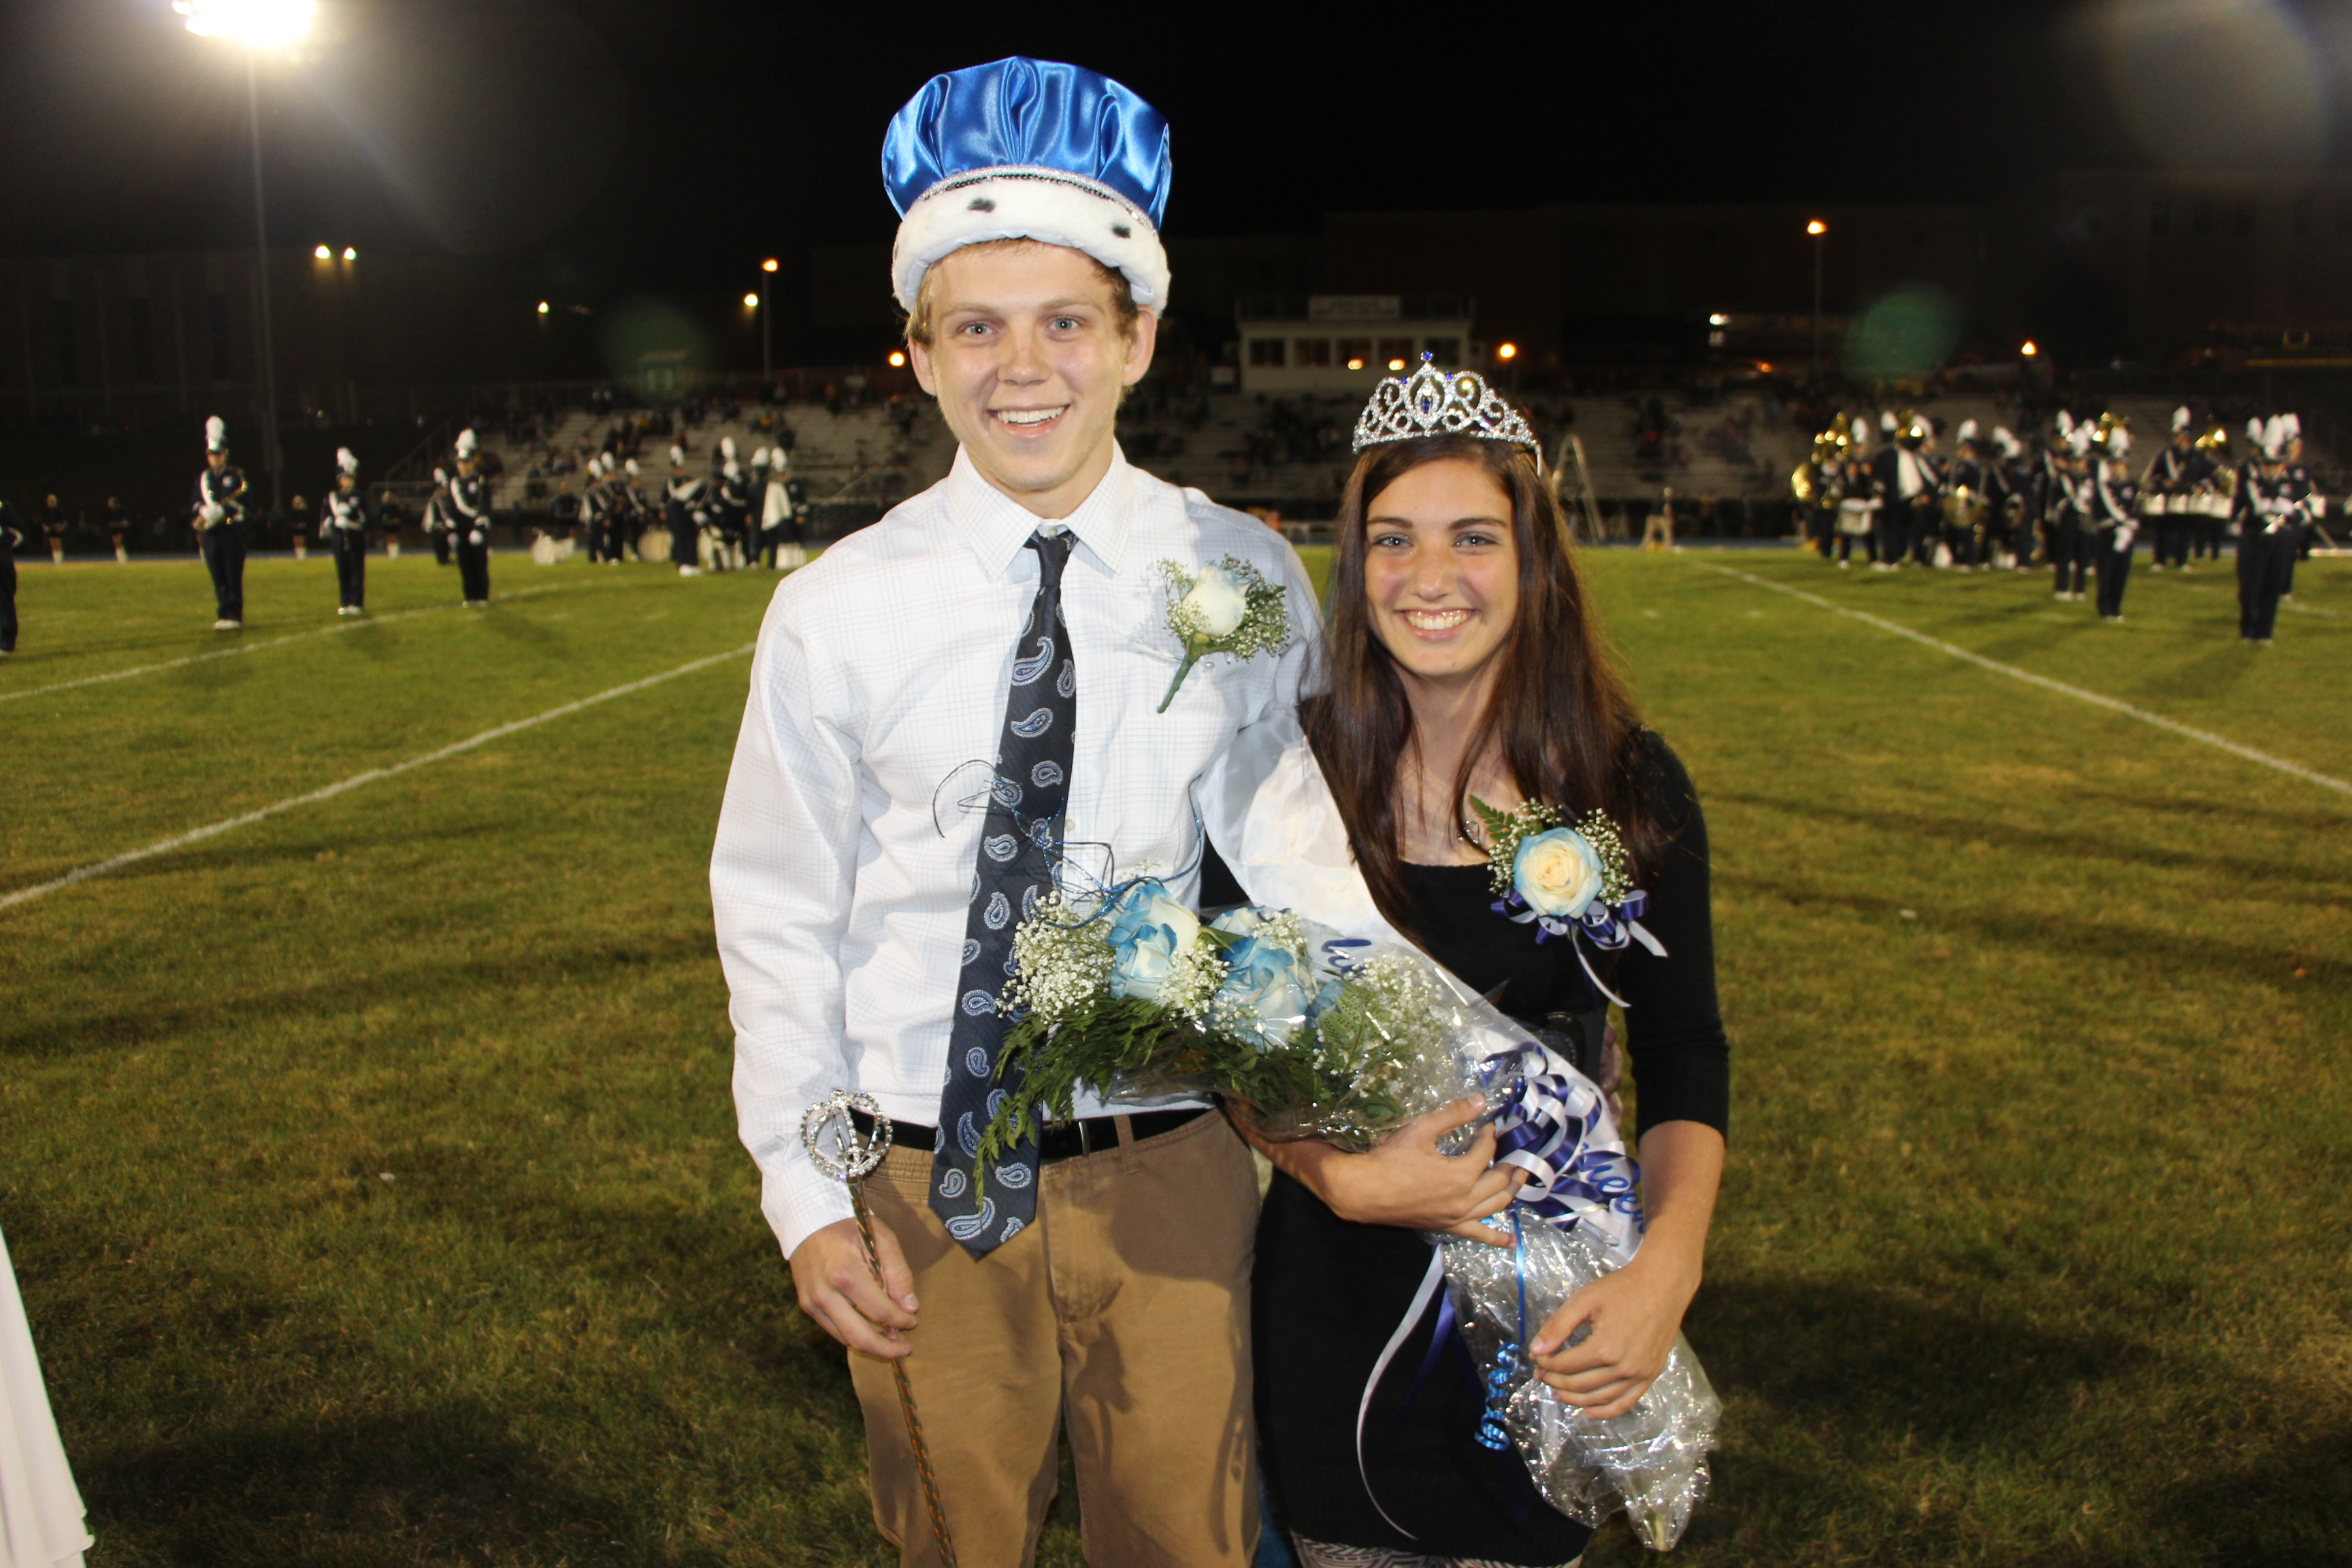 tamaqua crowns 2014 homecoming king and queen